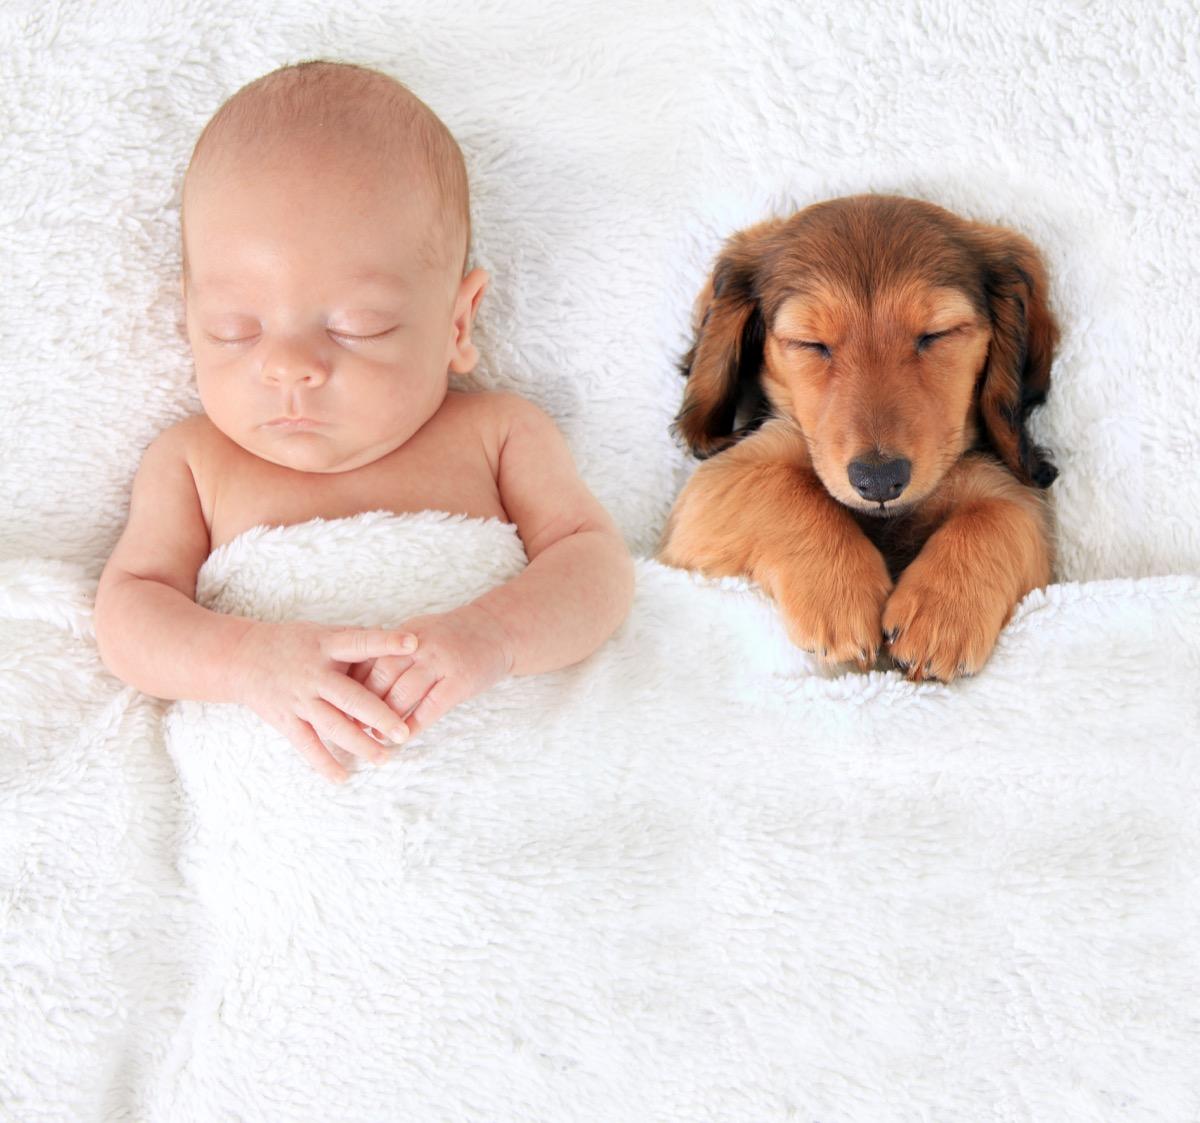 Puppy and baby napping together